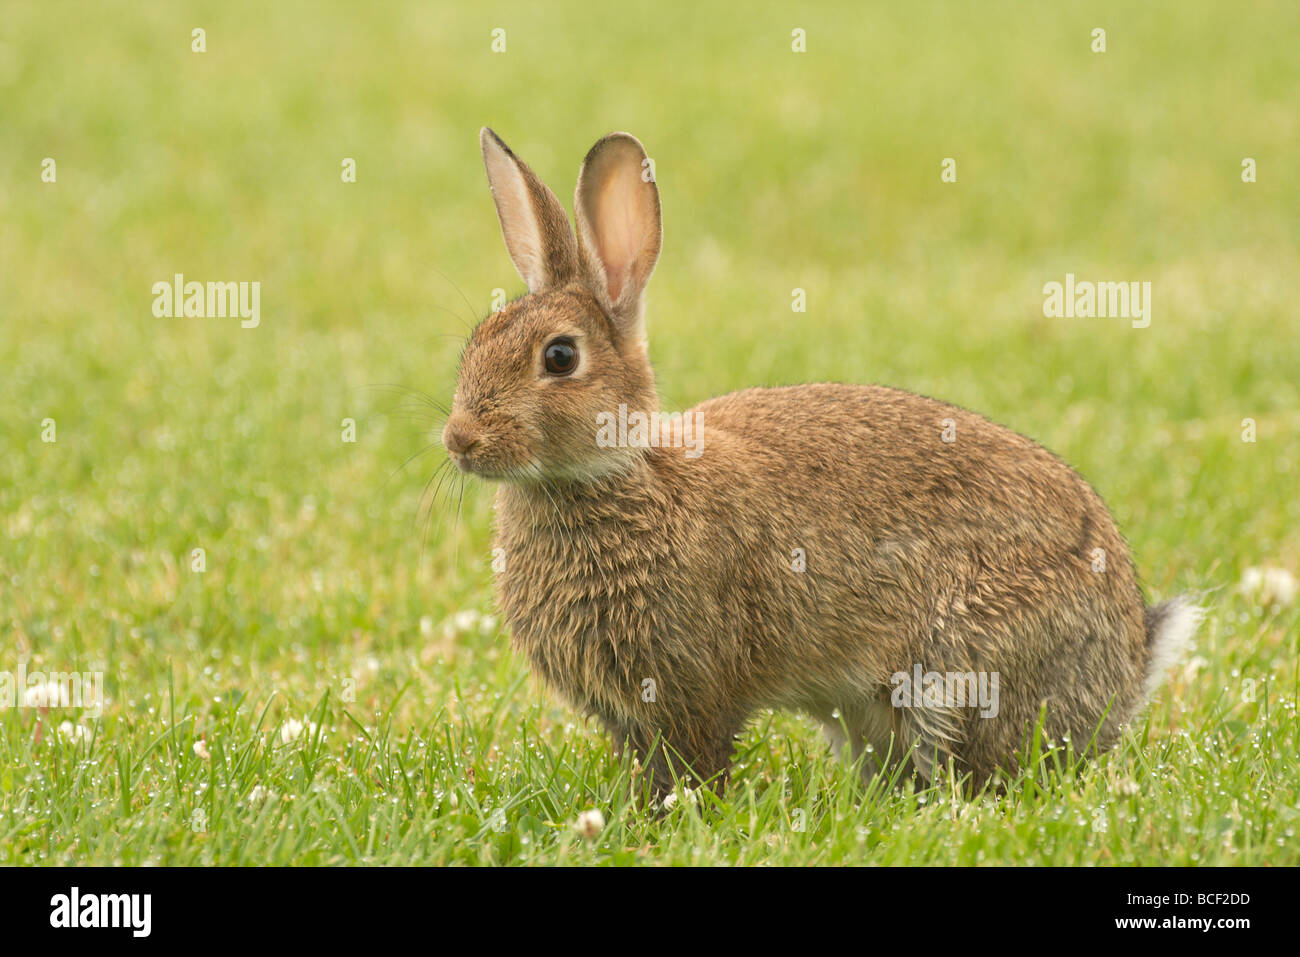 Un jeune lapin alerte Photo Stock